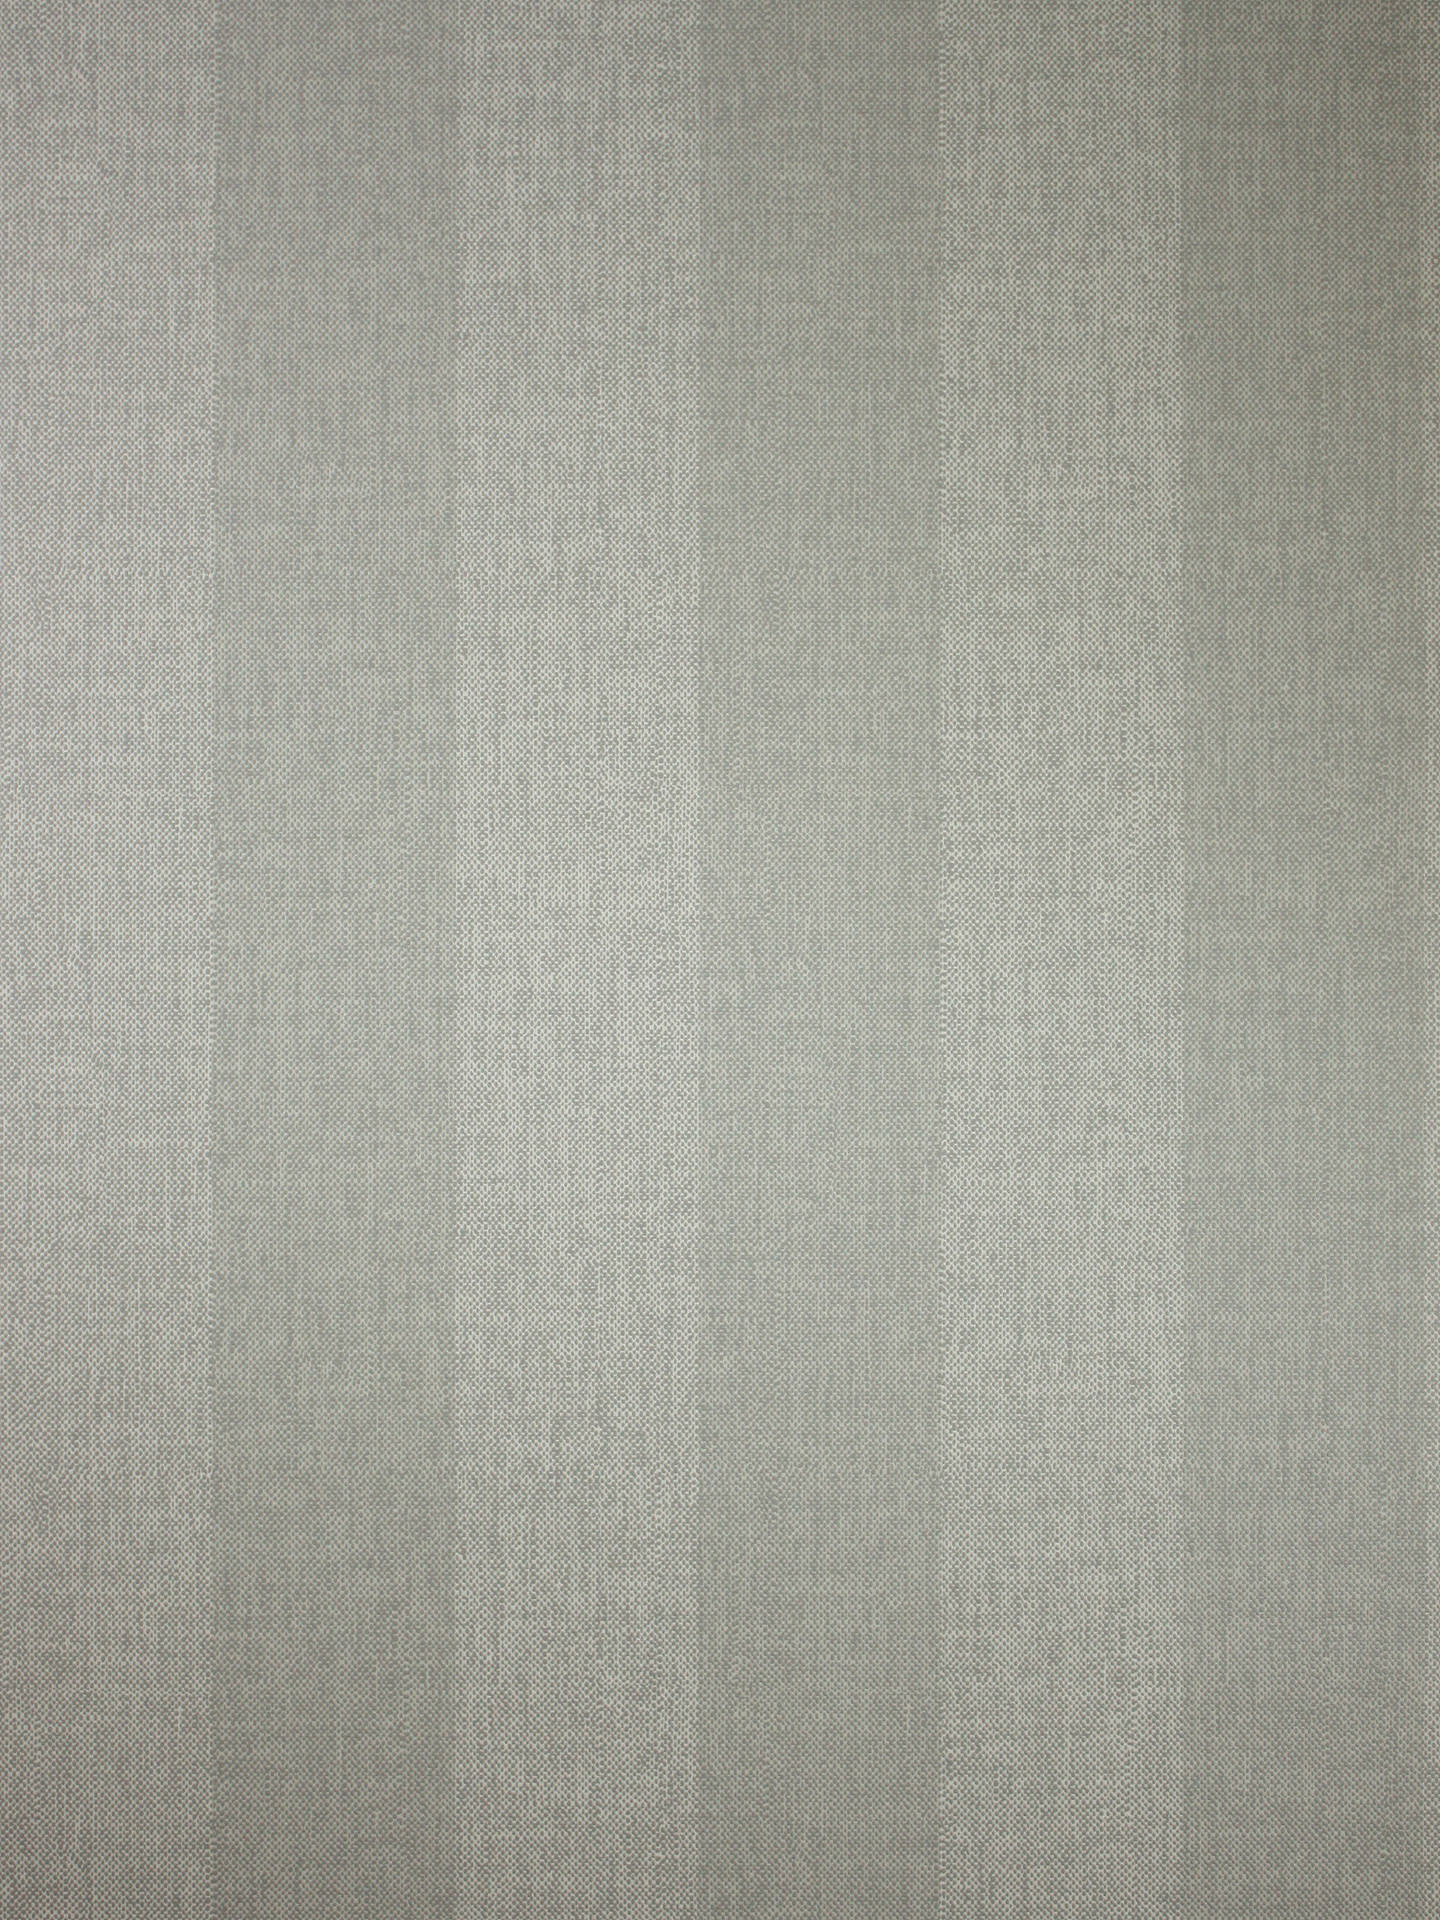 BuyOsborne & Little Ennismore Wallpaper, Taupe W6293-07 Online at johnlewis.com